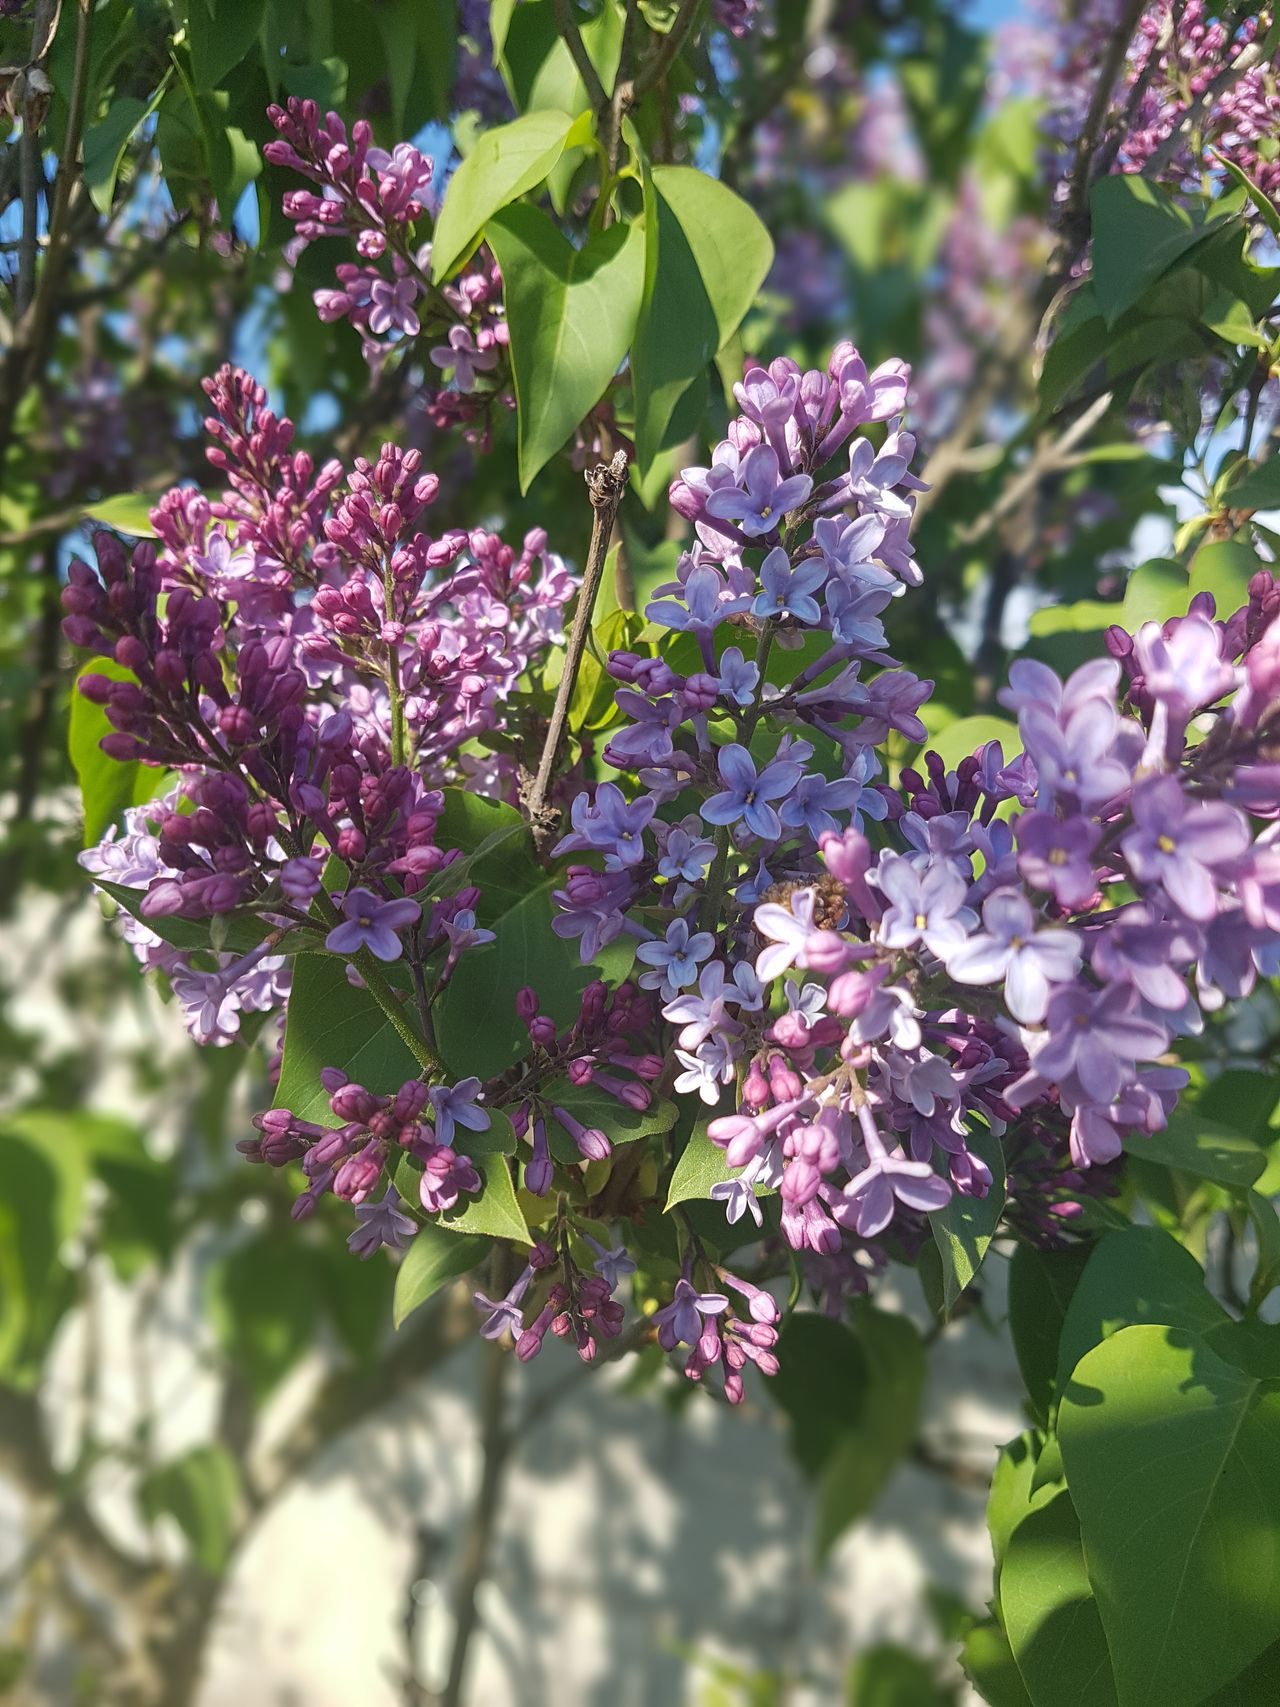 Flower Purple Beauty In Nature Day Outdoors Lilac